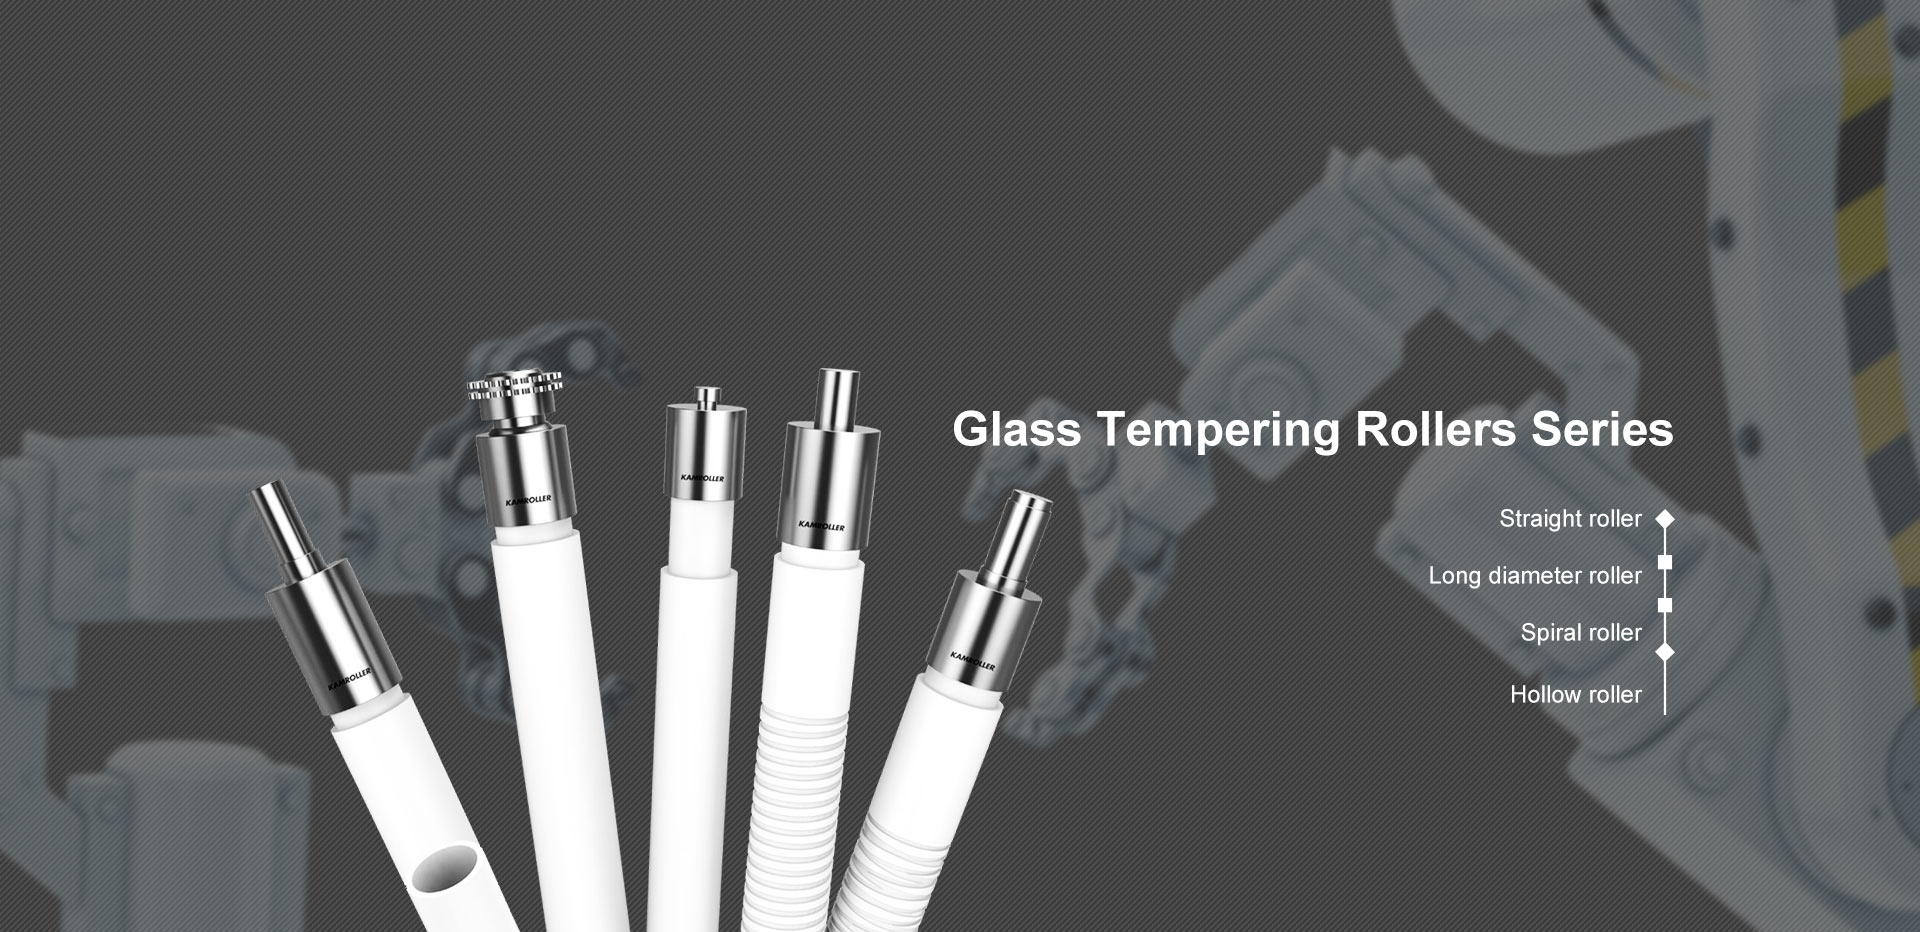 Glass Tempering Rollers Series